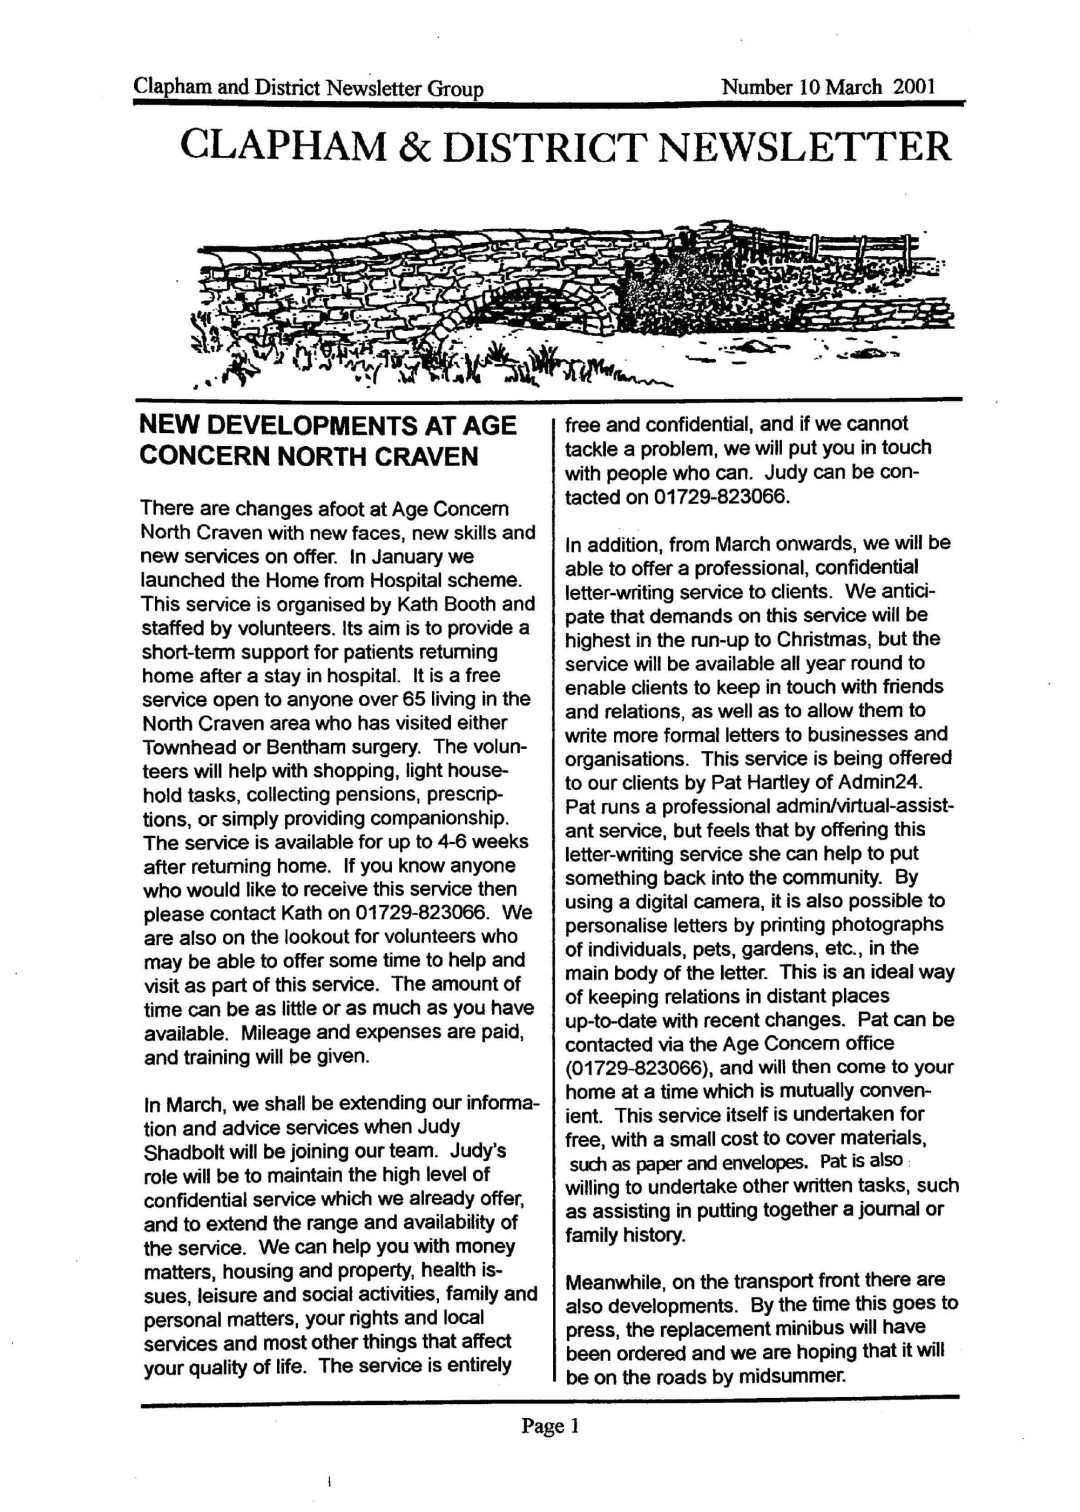 Clapham_Newsletter_No10_March_2001-1